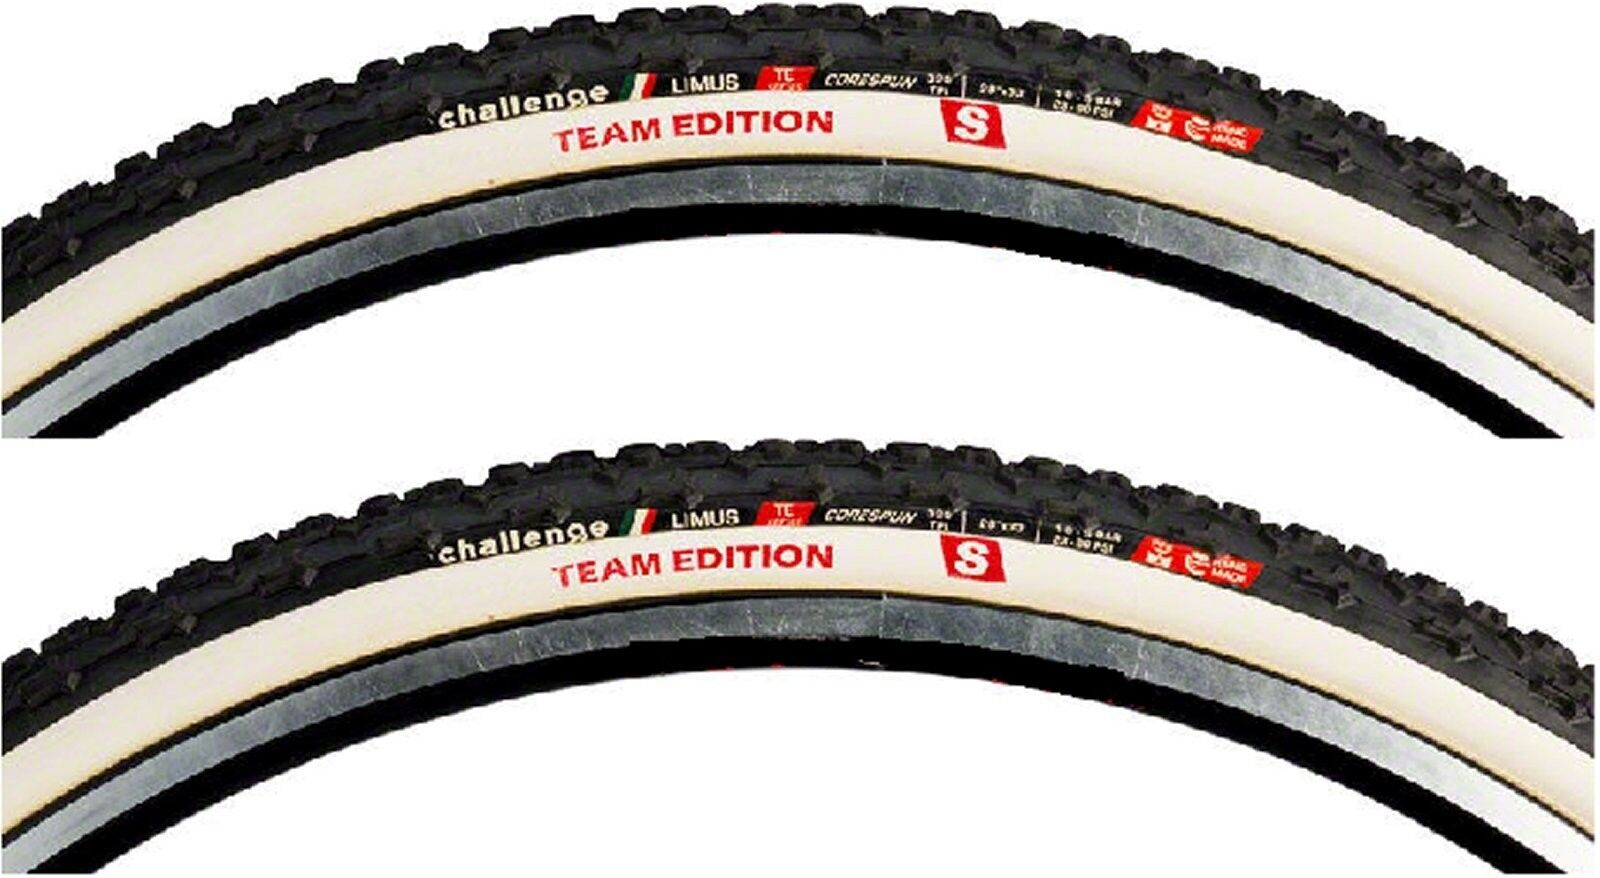 Challenge Limus S Team Edition cyclocross  tubular 700 x 33 (2 tires)  save 35% - 70% off